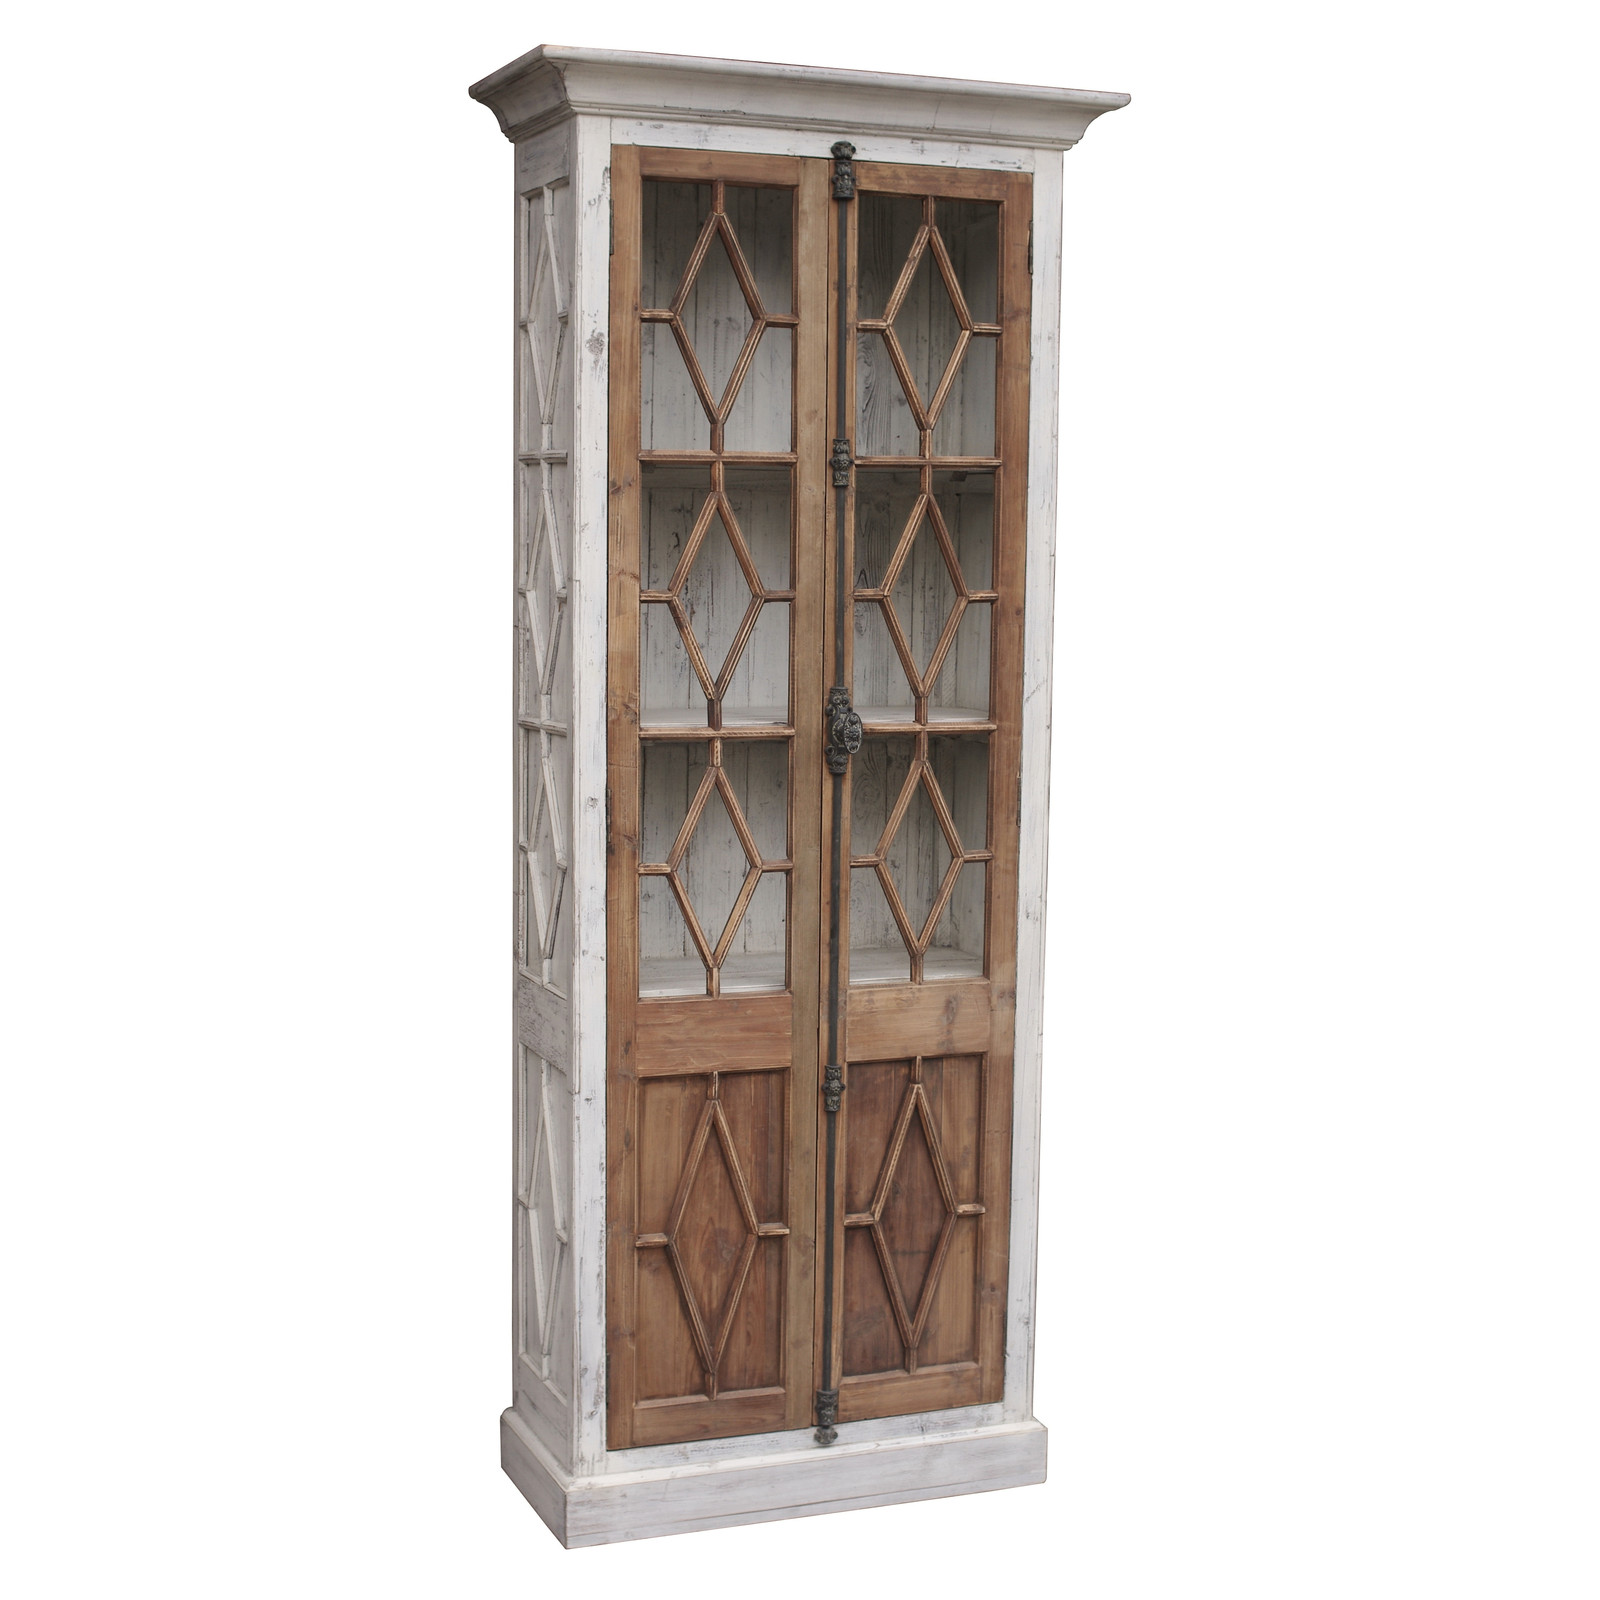 Restoration hardware horchow french casement glass fretwork armoire bookshelf cabinets cupboards - Restoration hardware cabinets ...